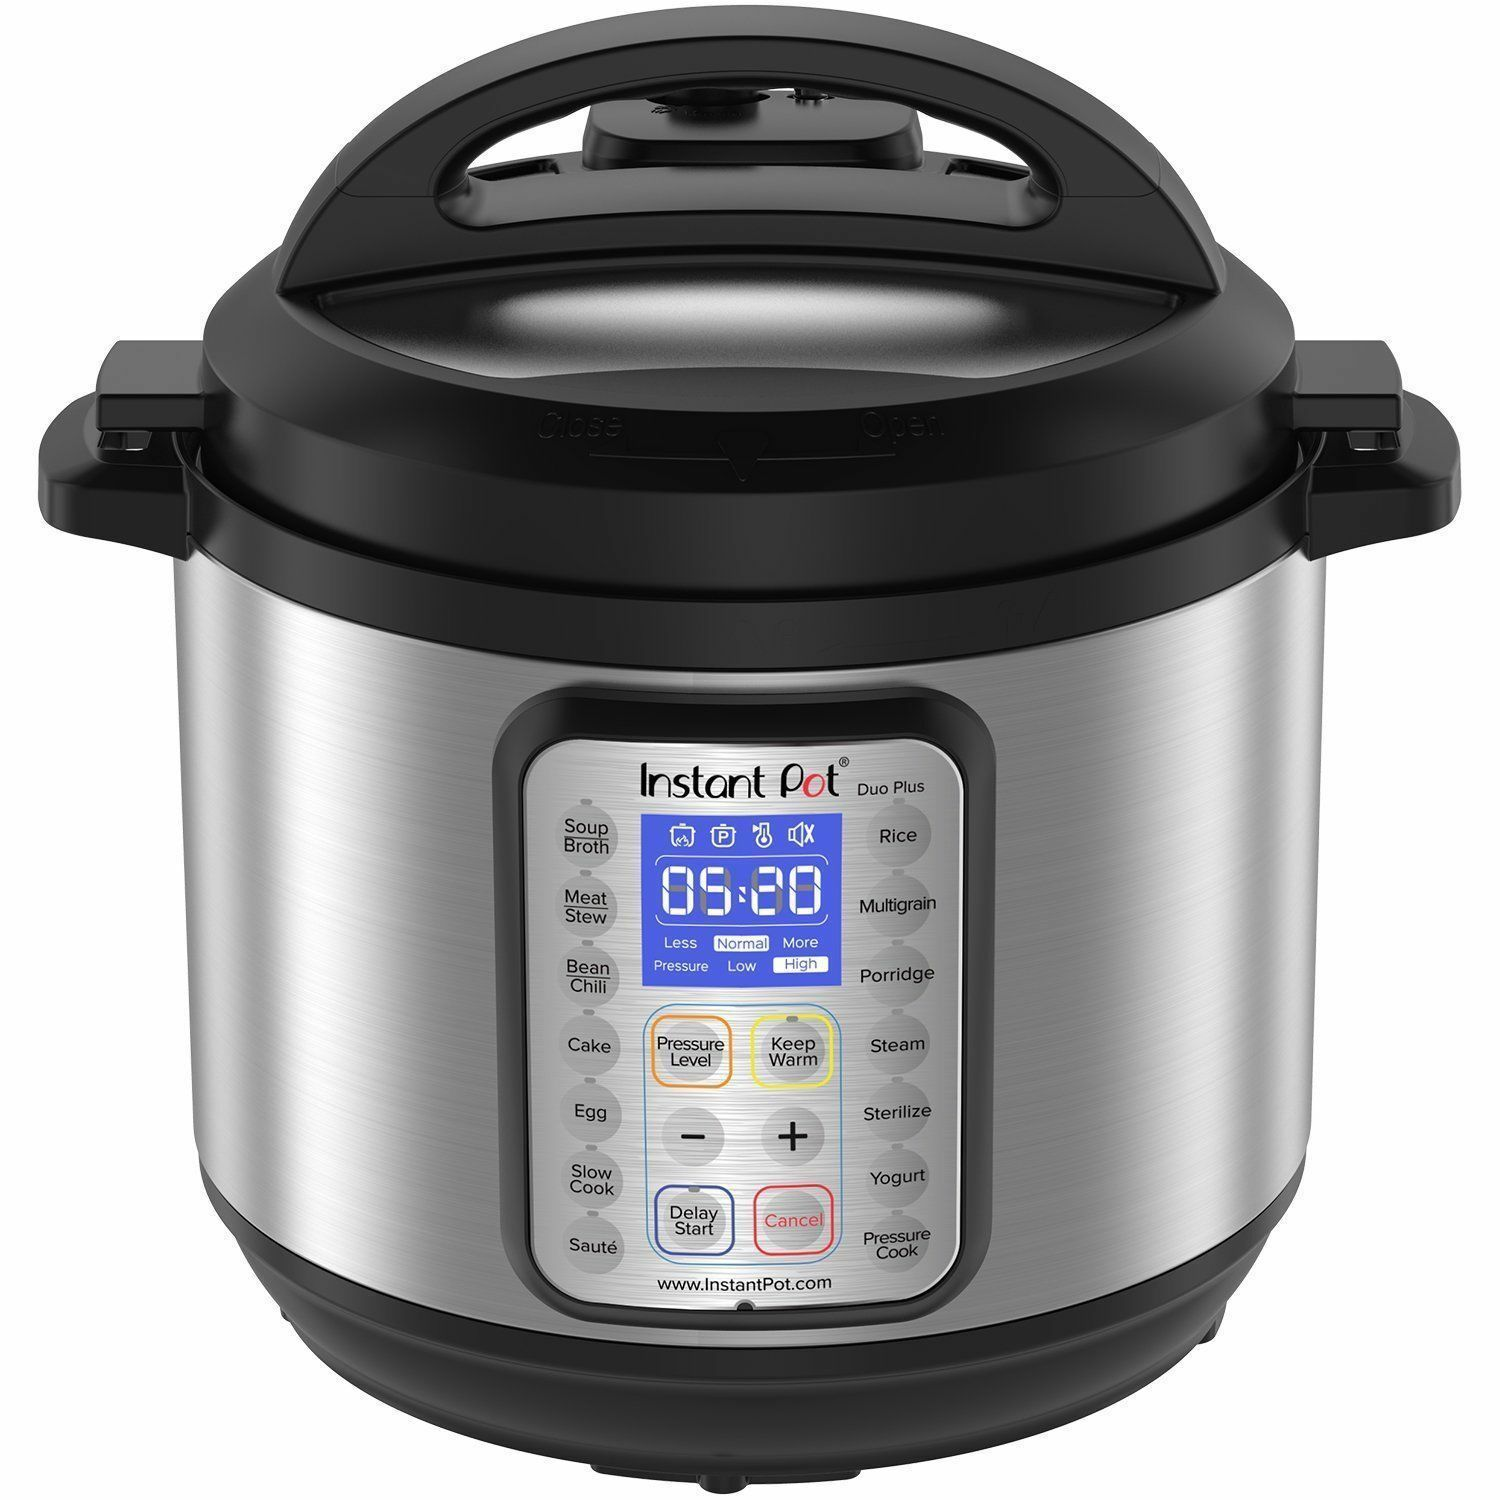 Instant Pot DUO Plus 8 Qt 9-in-1 Multi- Use Programmable Pressure Cooker Slow